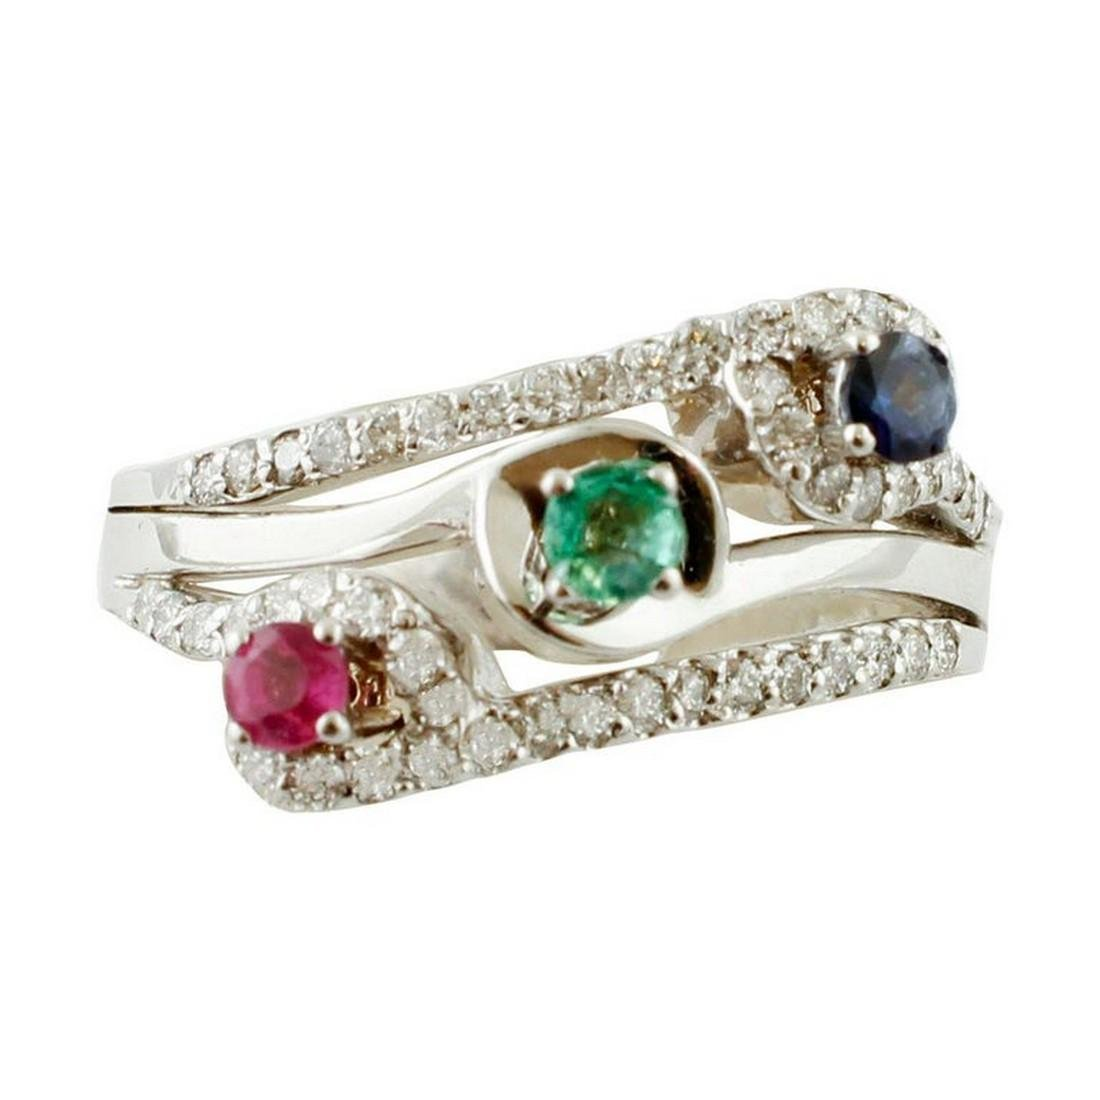 Emerald, Blue Sapphire, Ruby, Diamonds, 18 Karat Gold